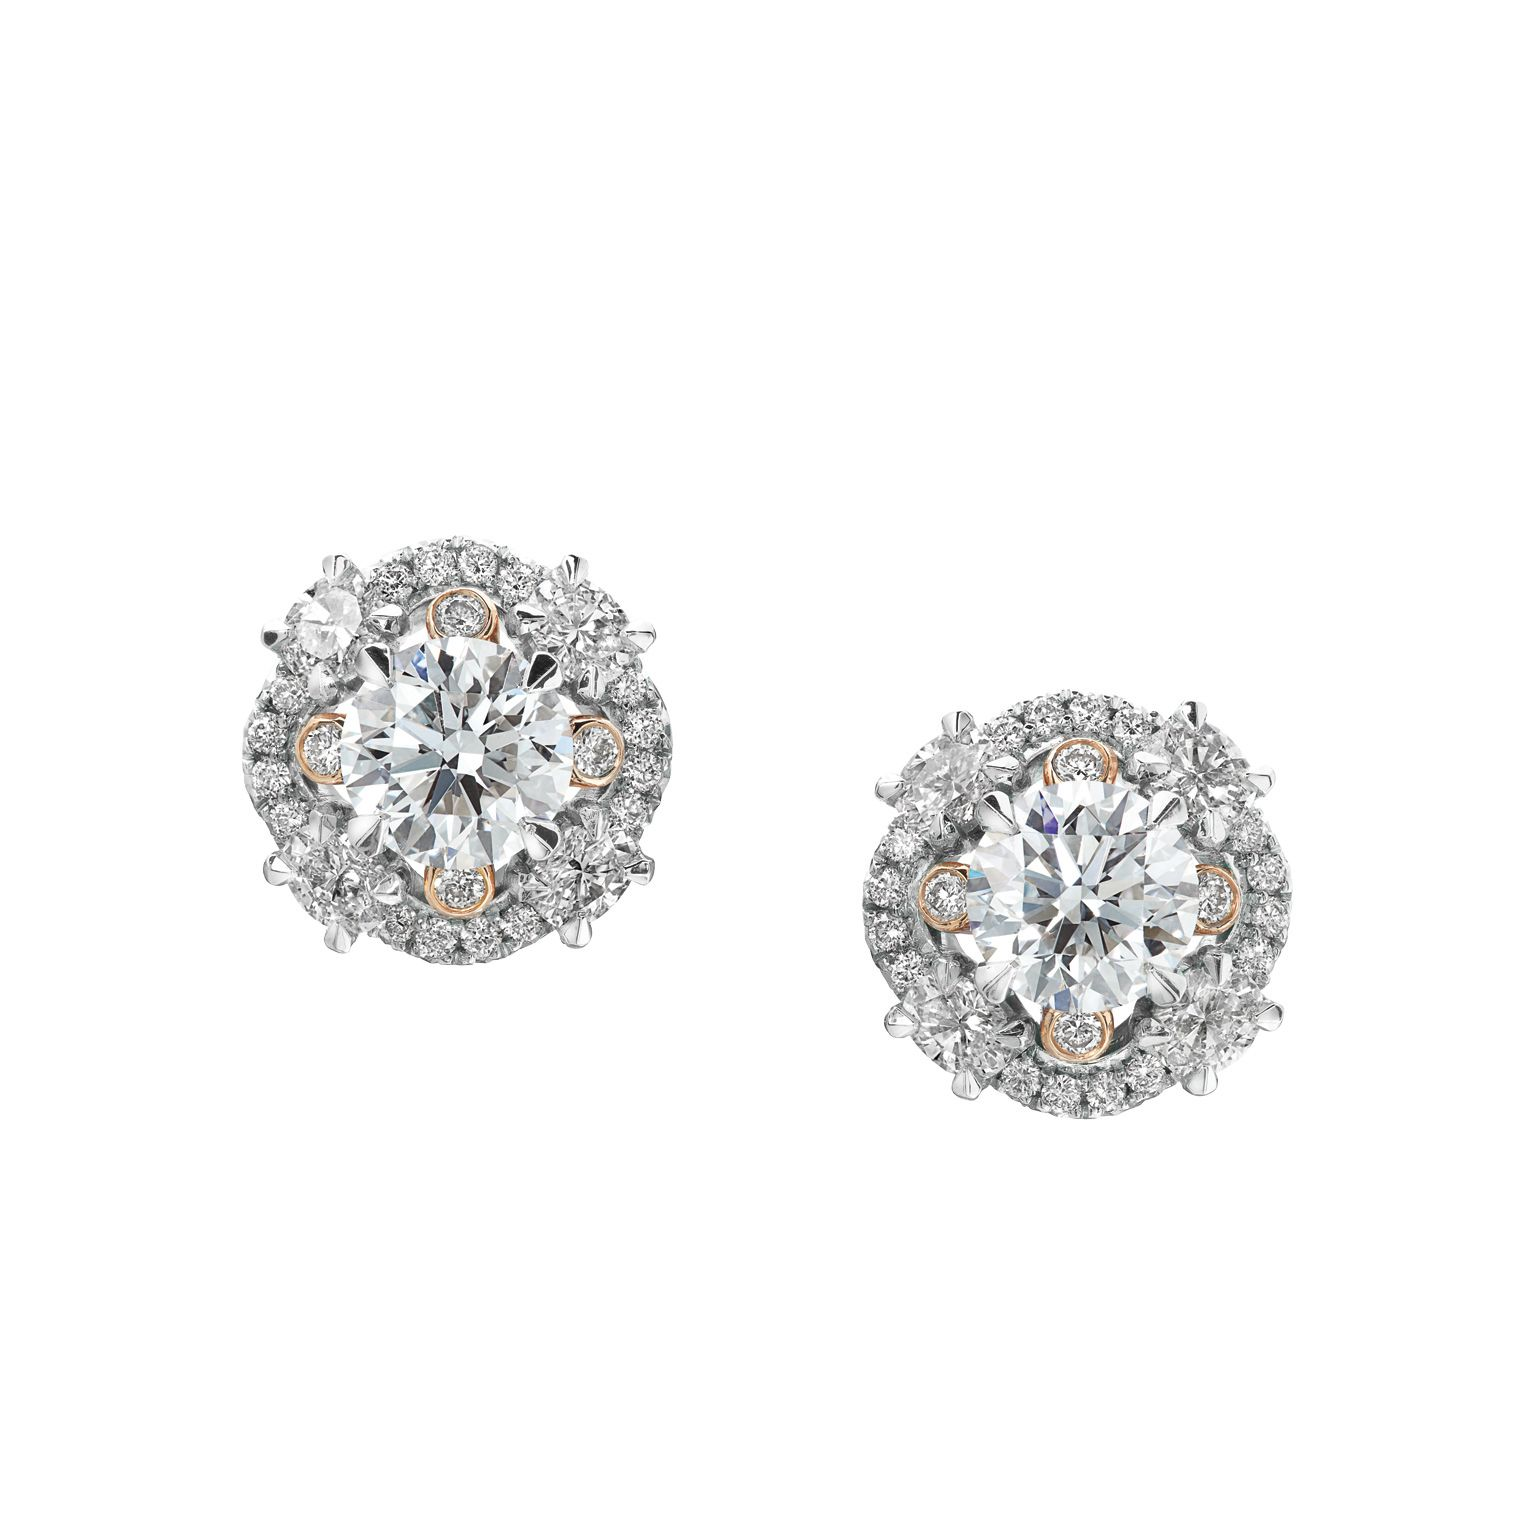 Diamond Cluster Double Halo Stud Earrings in 14K Rose and